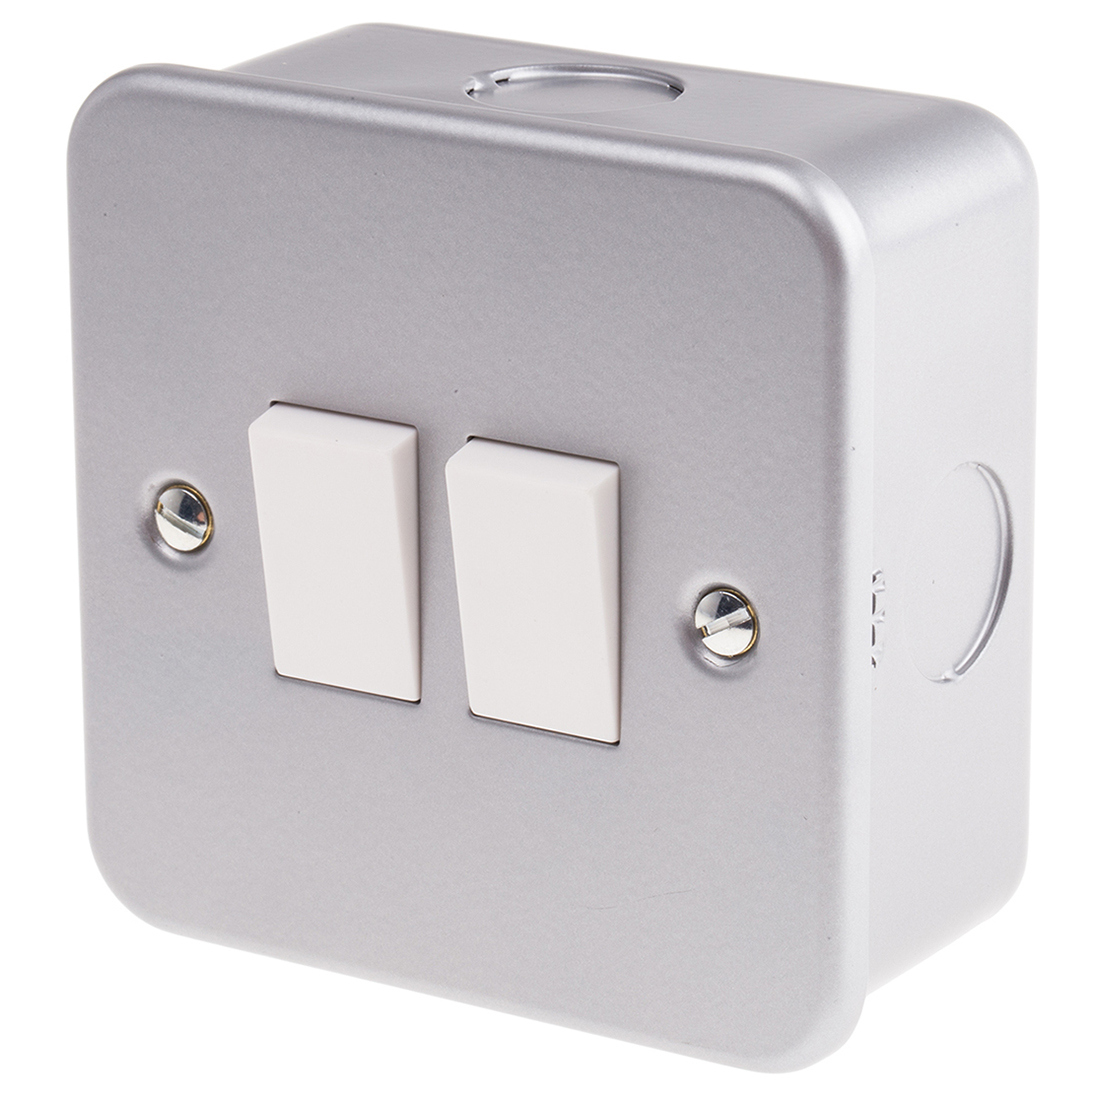 Grey 6 A Surface Mount Rocker Light Switch Grey 5 mm, 2 Way Screwed Matte, 2 Gang BS Standard, 240 V 86.5mm